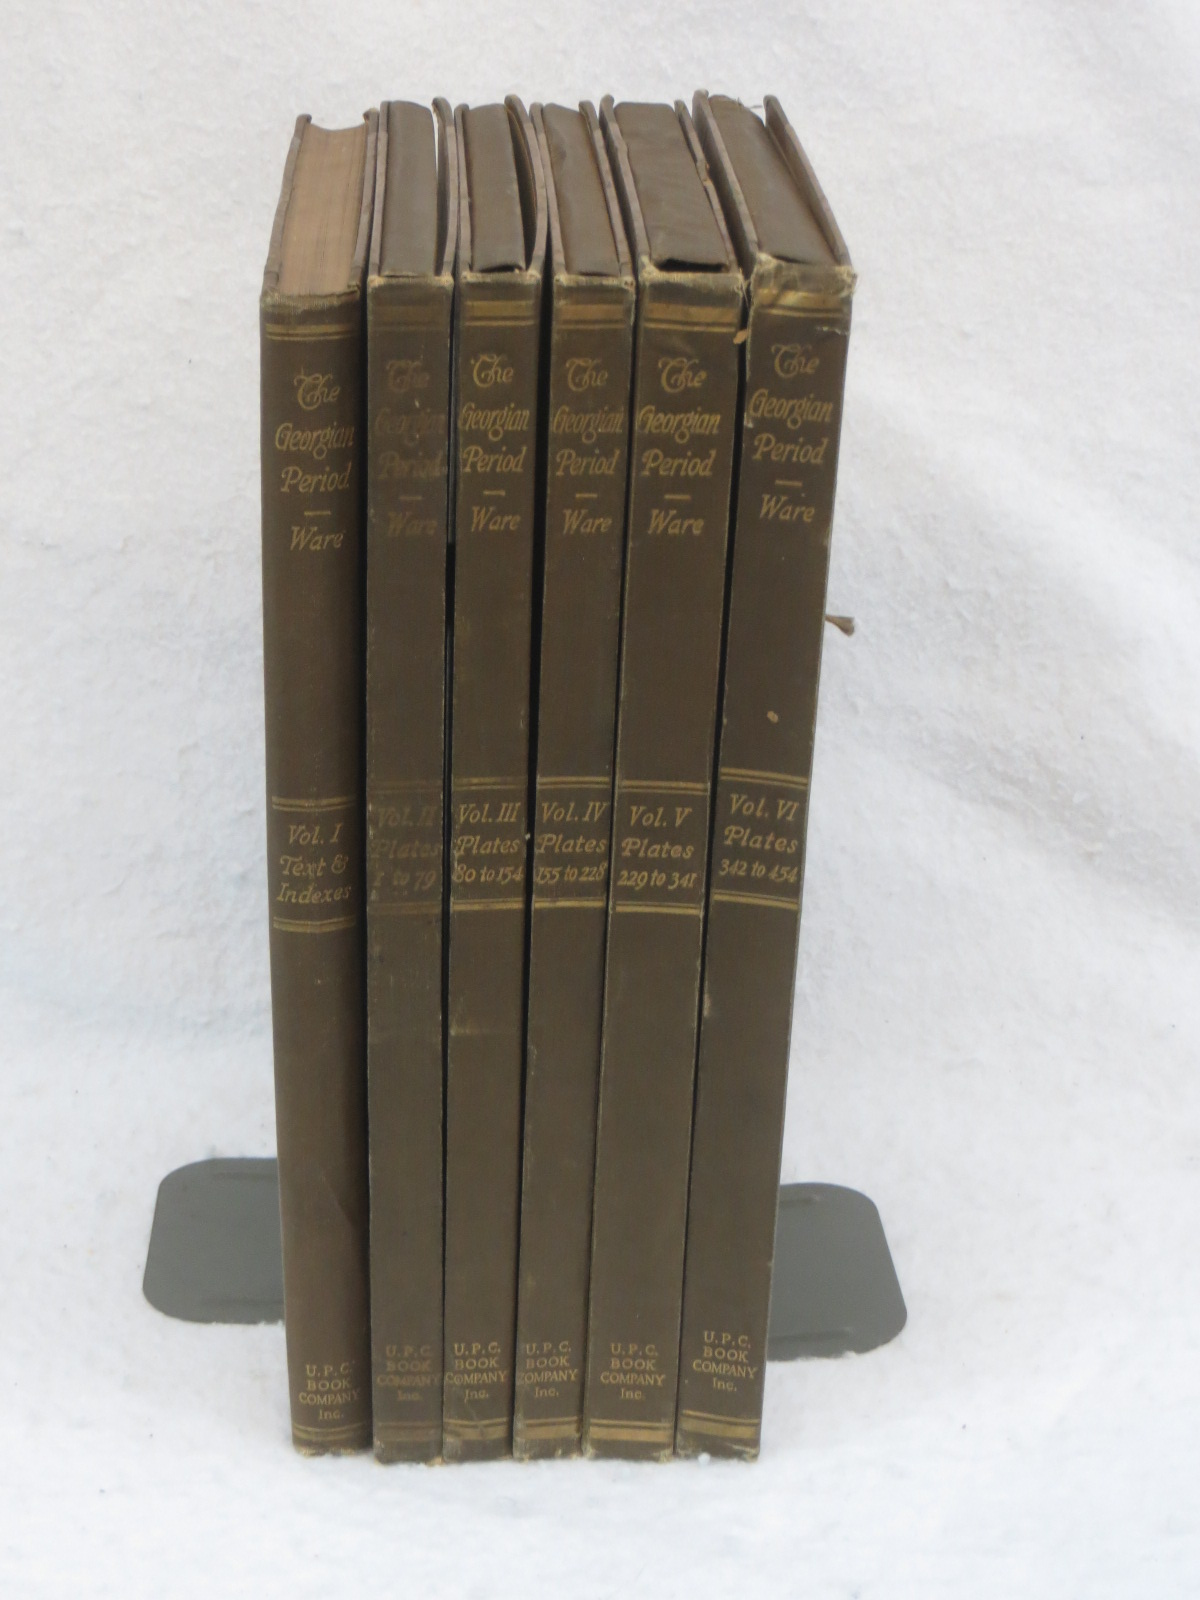 Details about William Rotch Ware THE GEORGIAN PERIOD 6 VOLUMES U P C  Book  Company 1923 HC